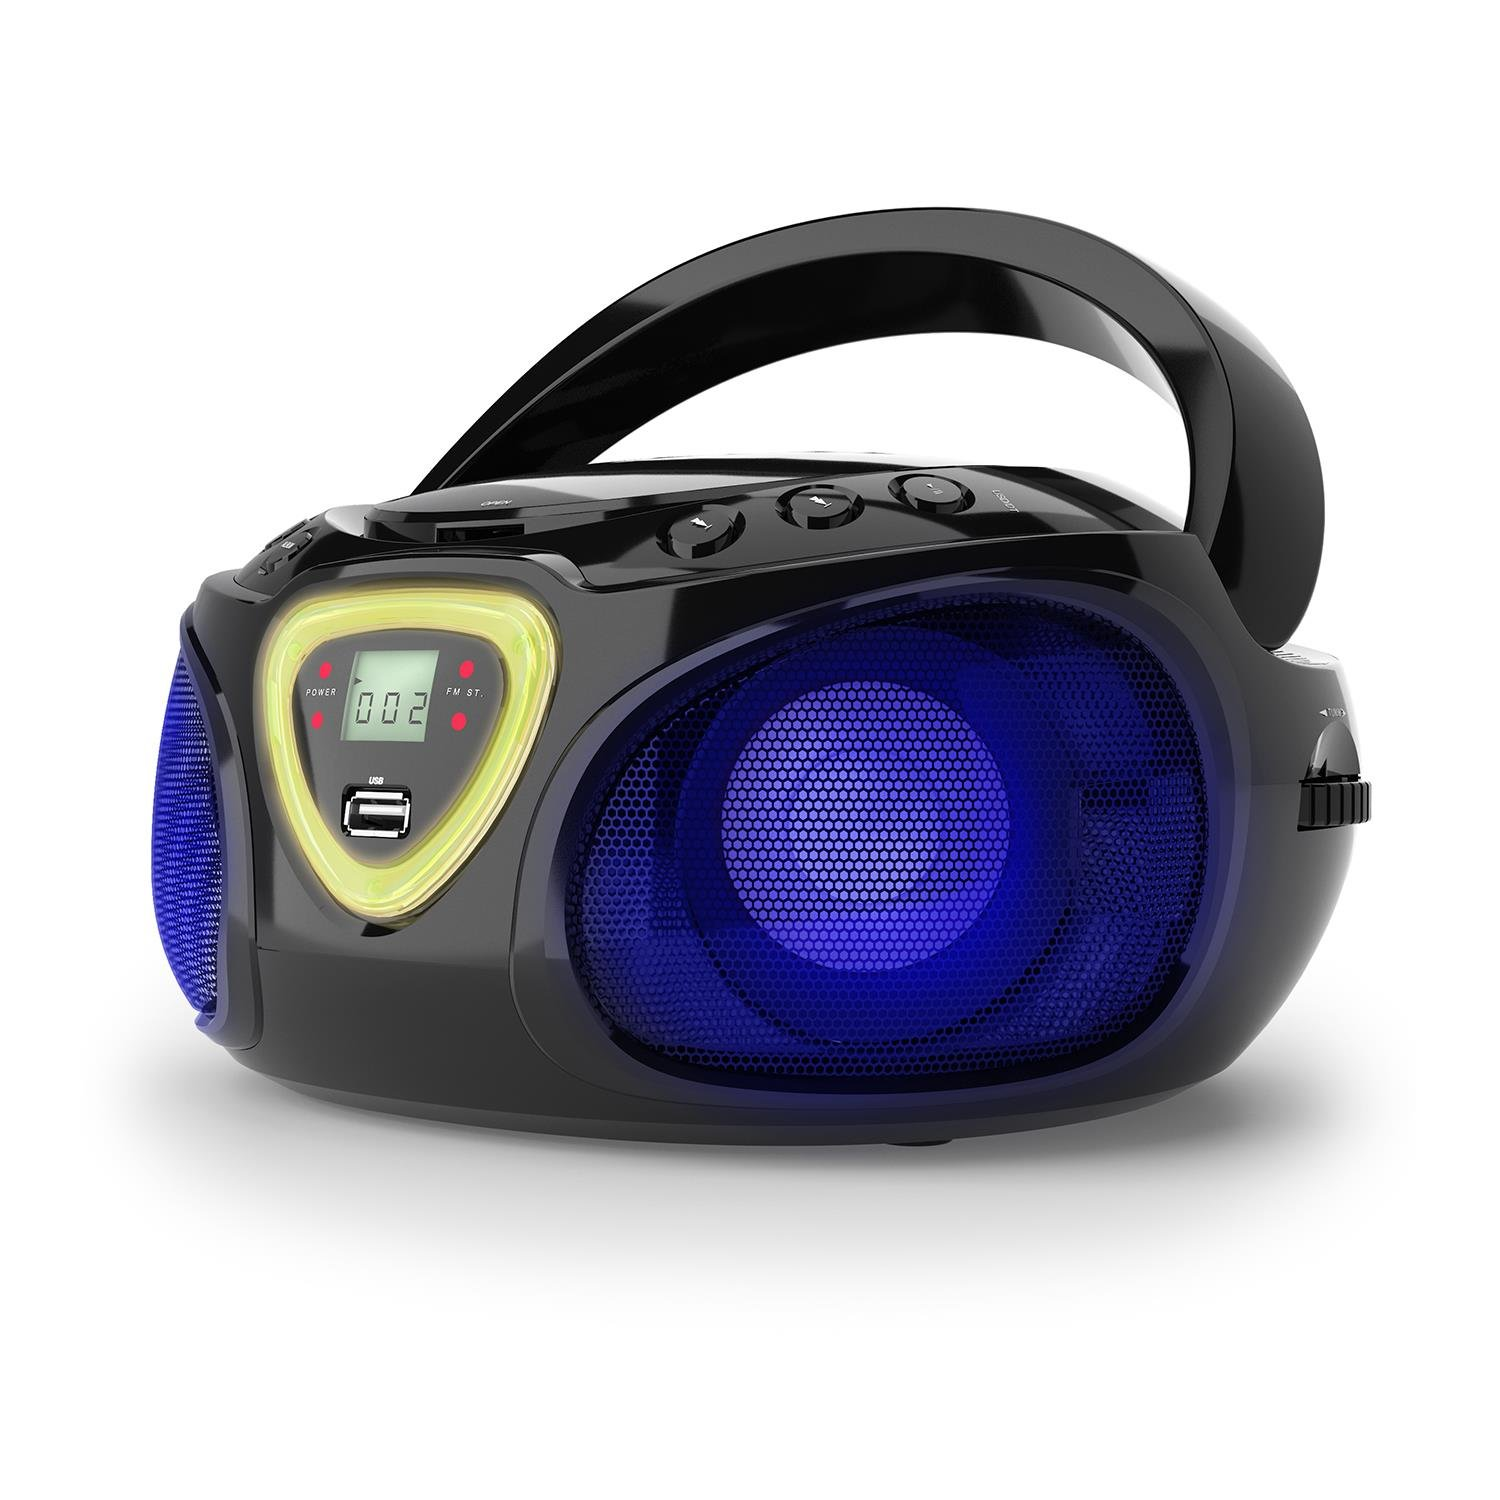 auna Roadie Portable Boombox LED light AM/FM Radio Bluetooth MP3/CD Player Aux-In Black by auna